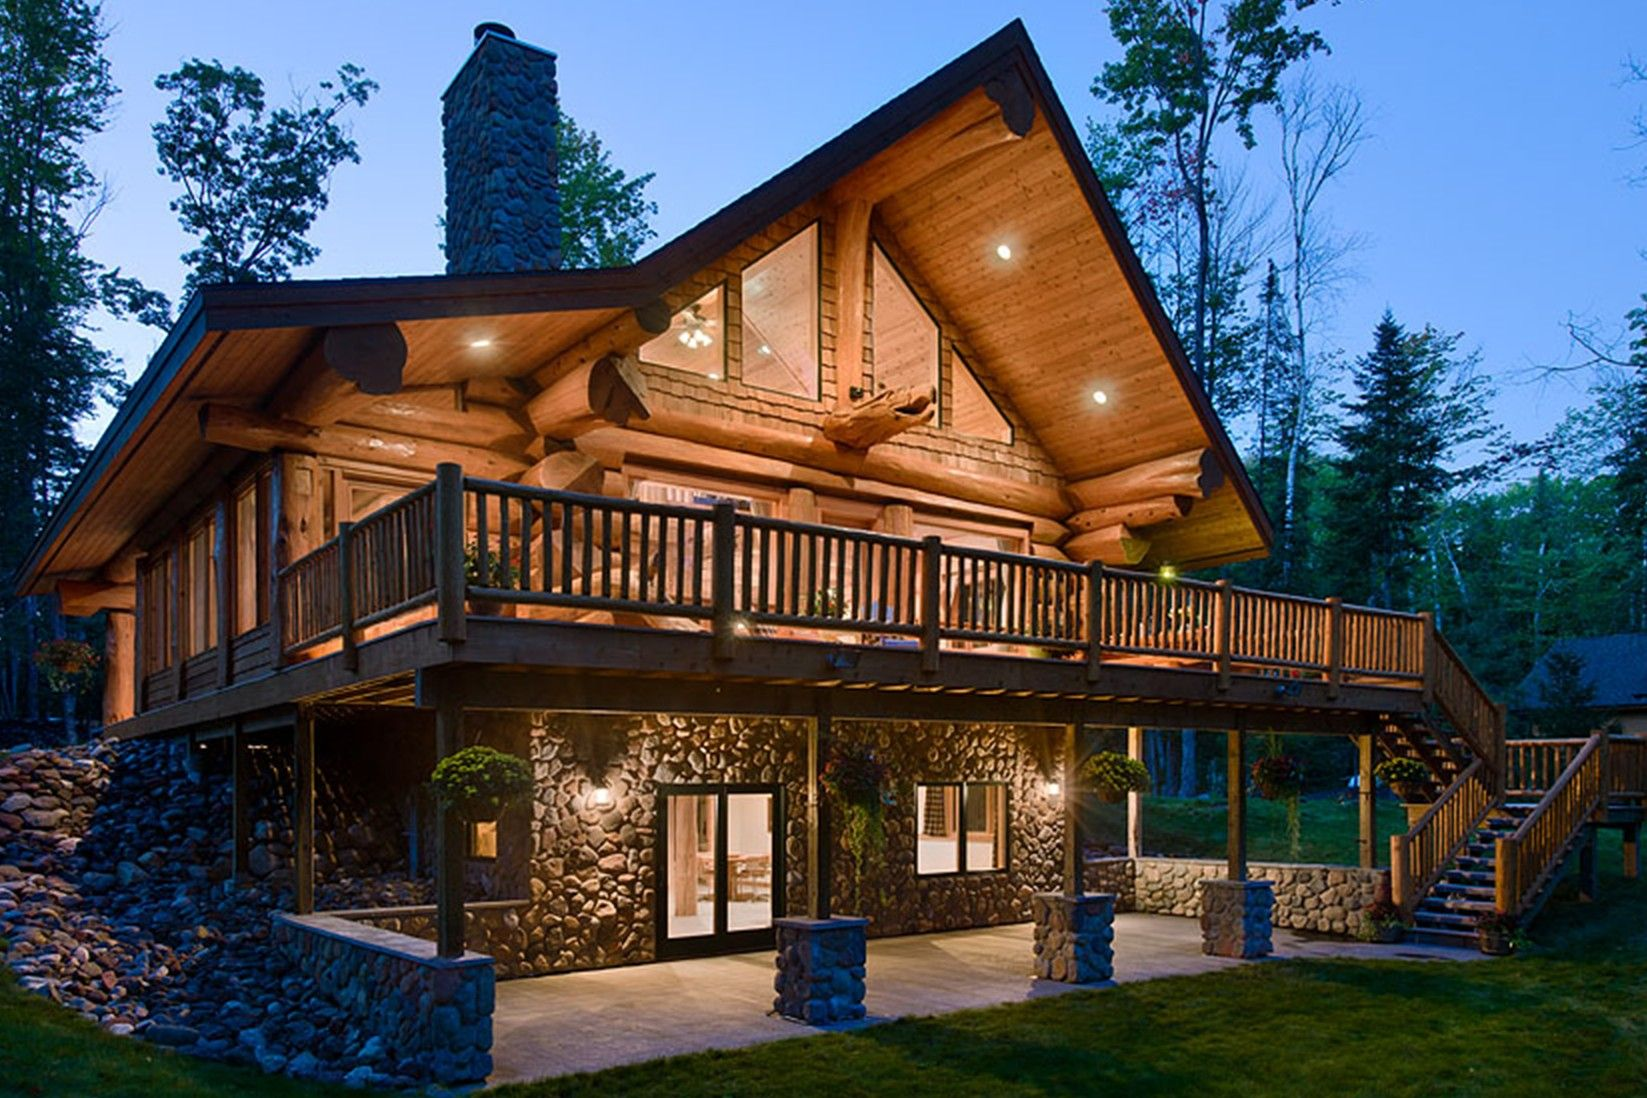 Cottage building plan: The Winchester | Log homes, Log cabin homes ...